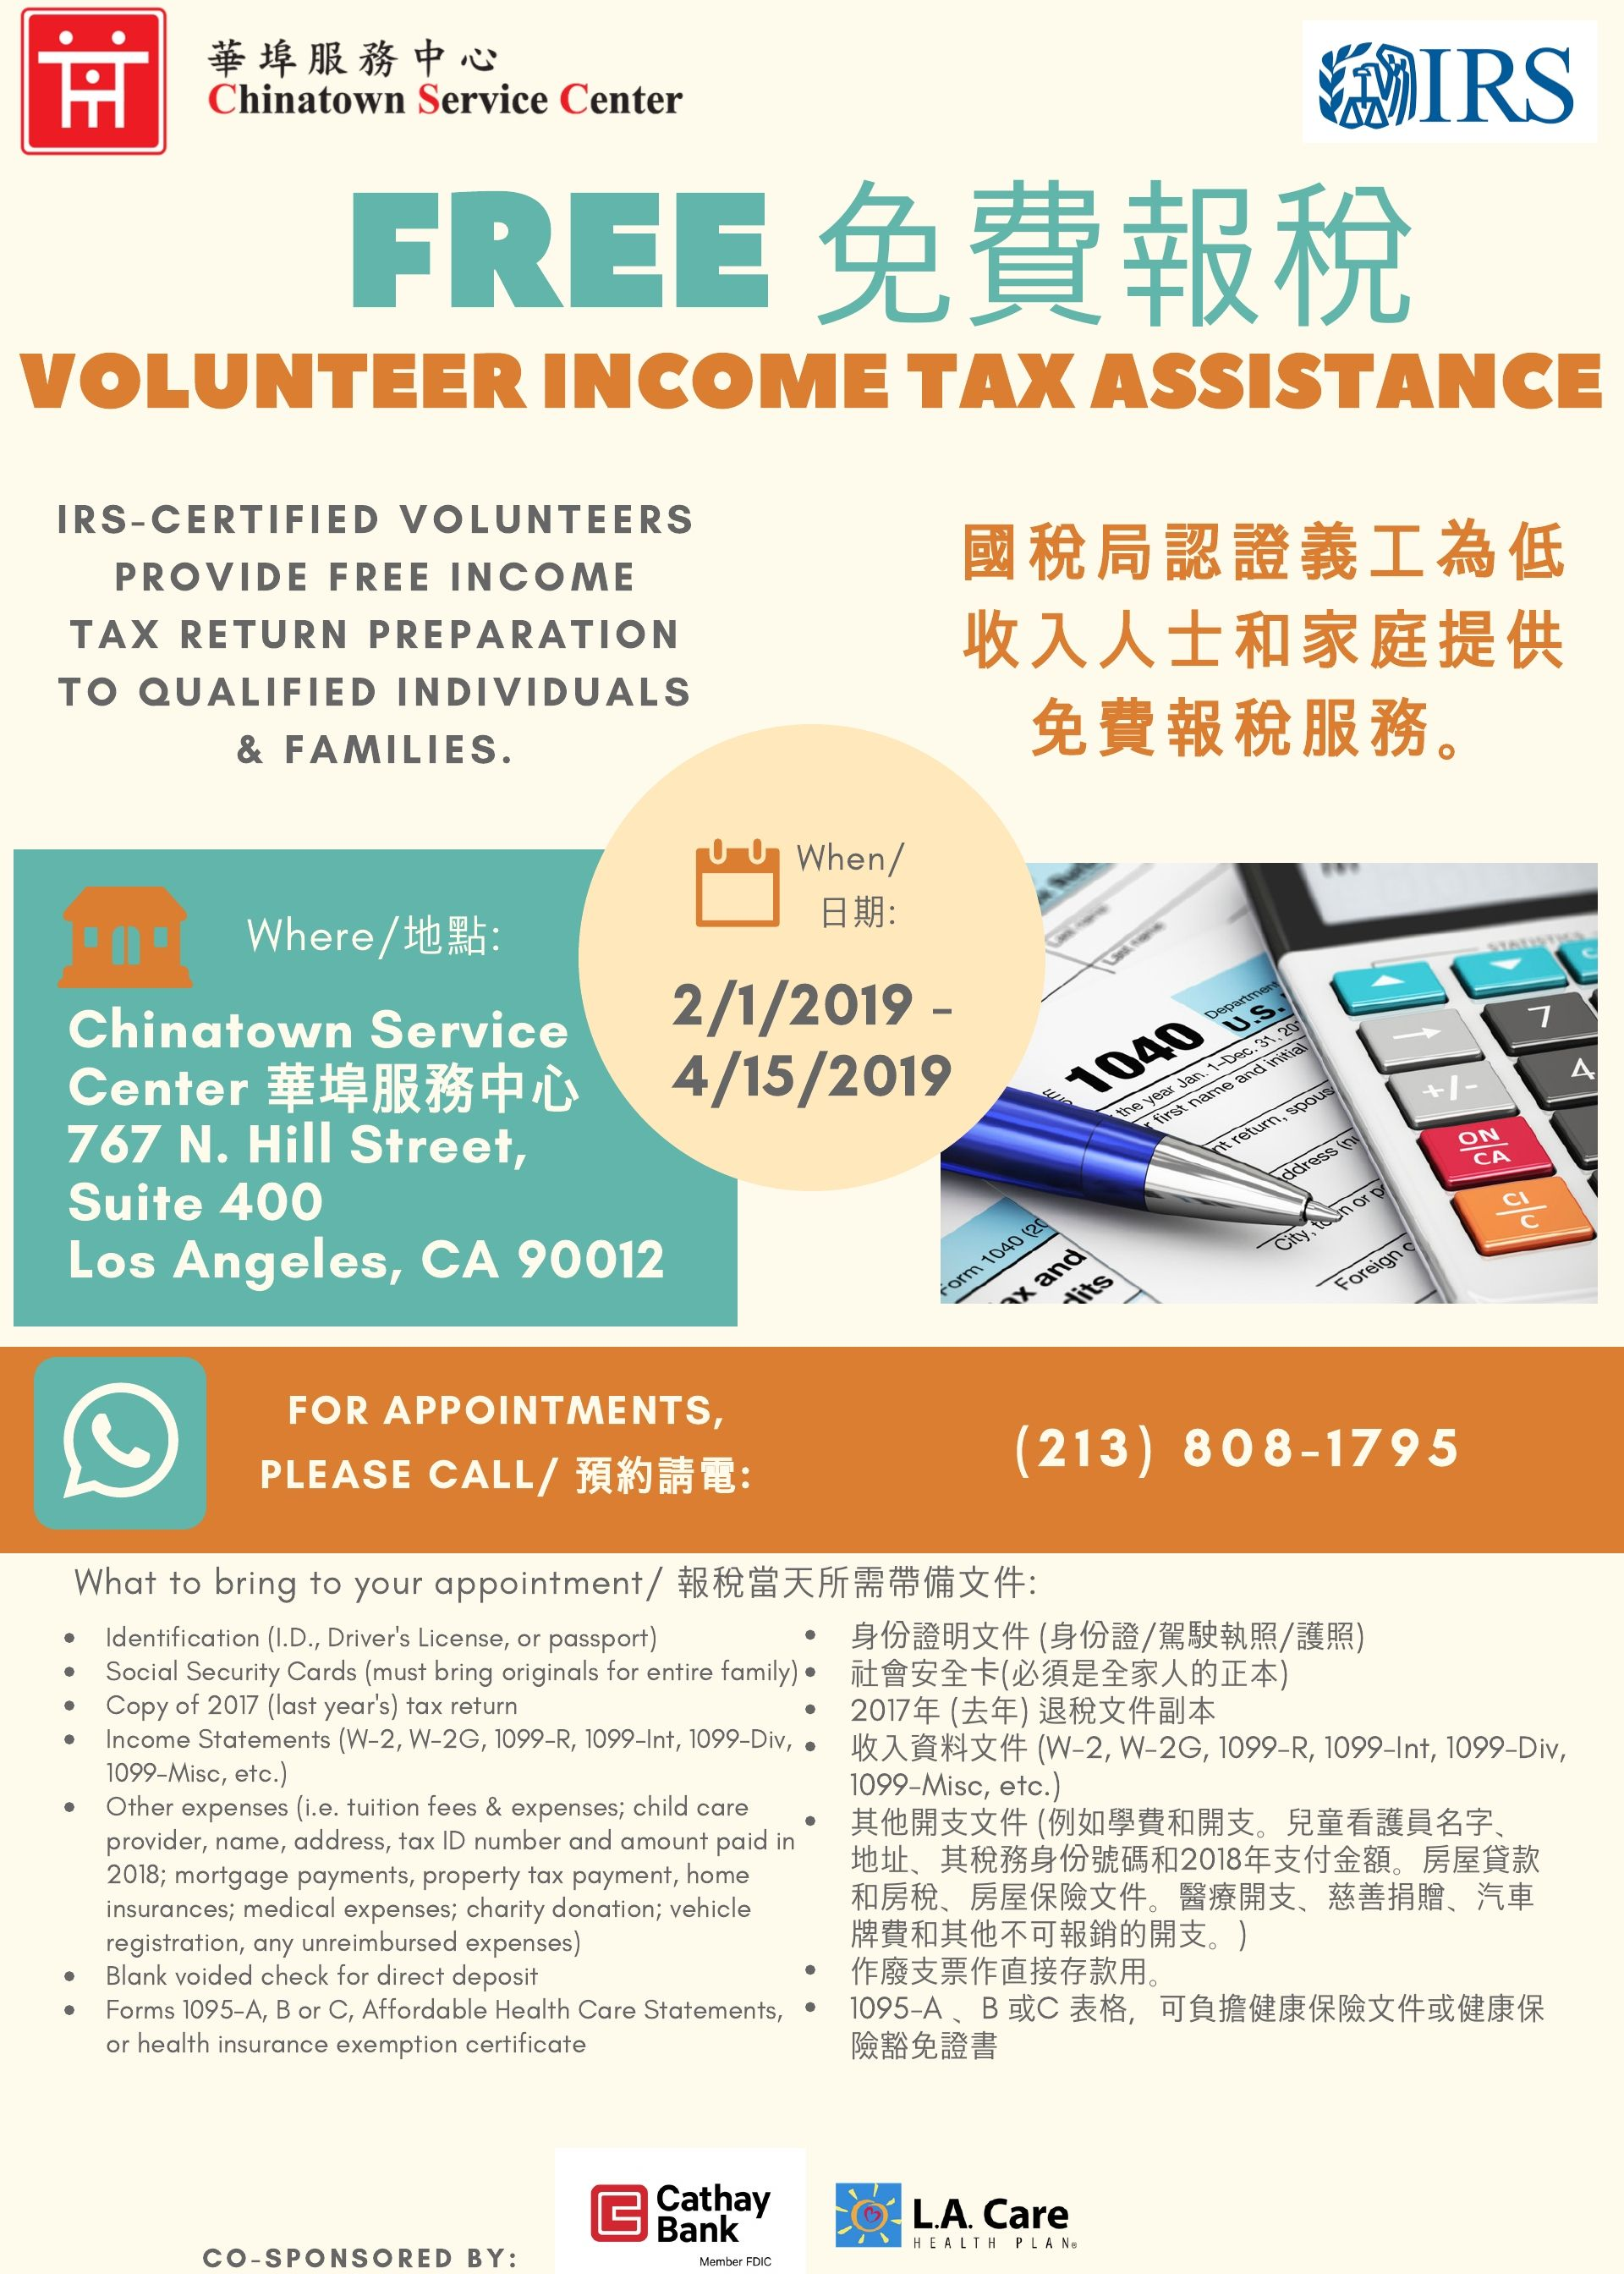 Free Income Tax Assistance Child Development Center Economic Development Development